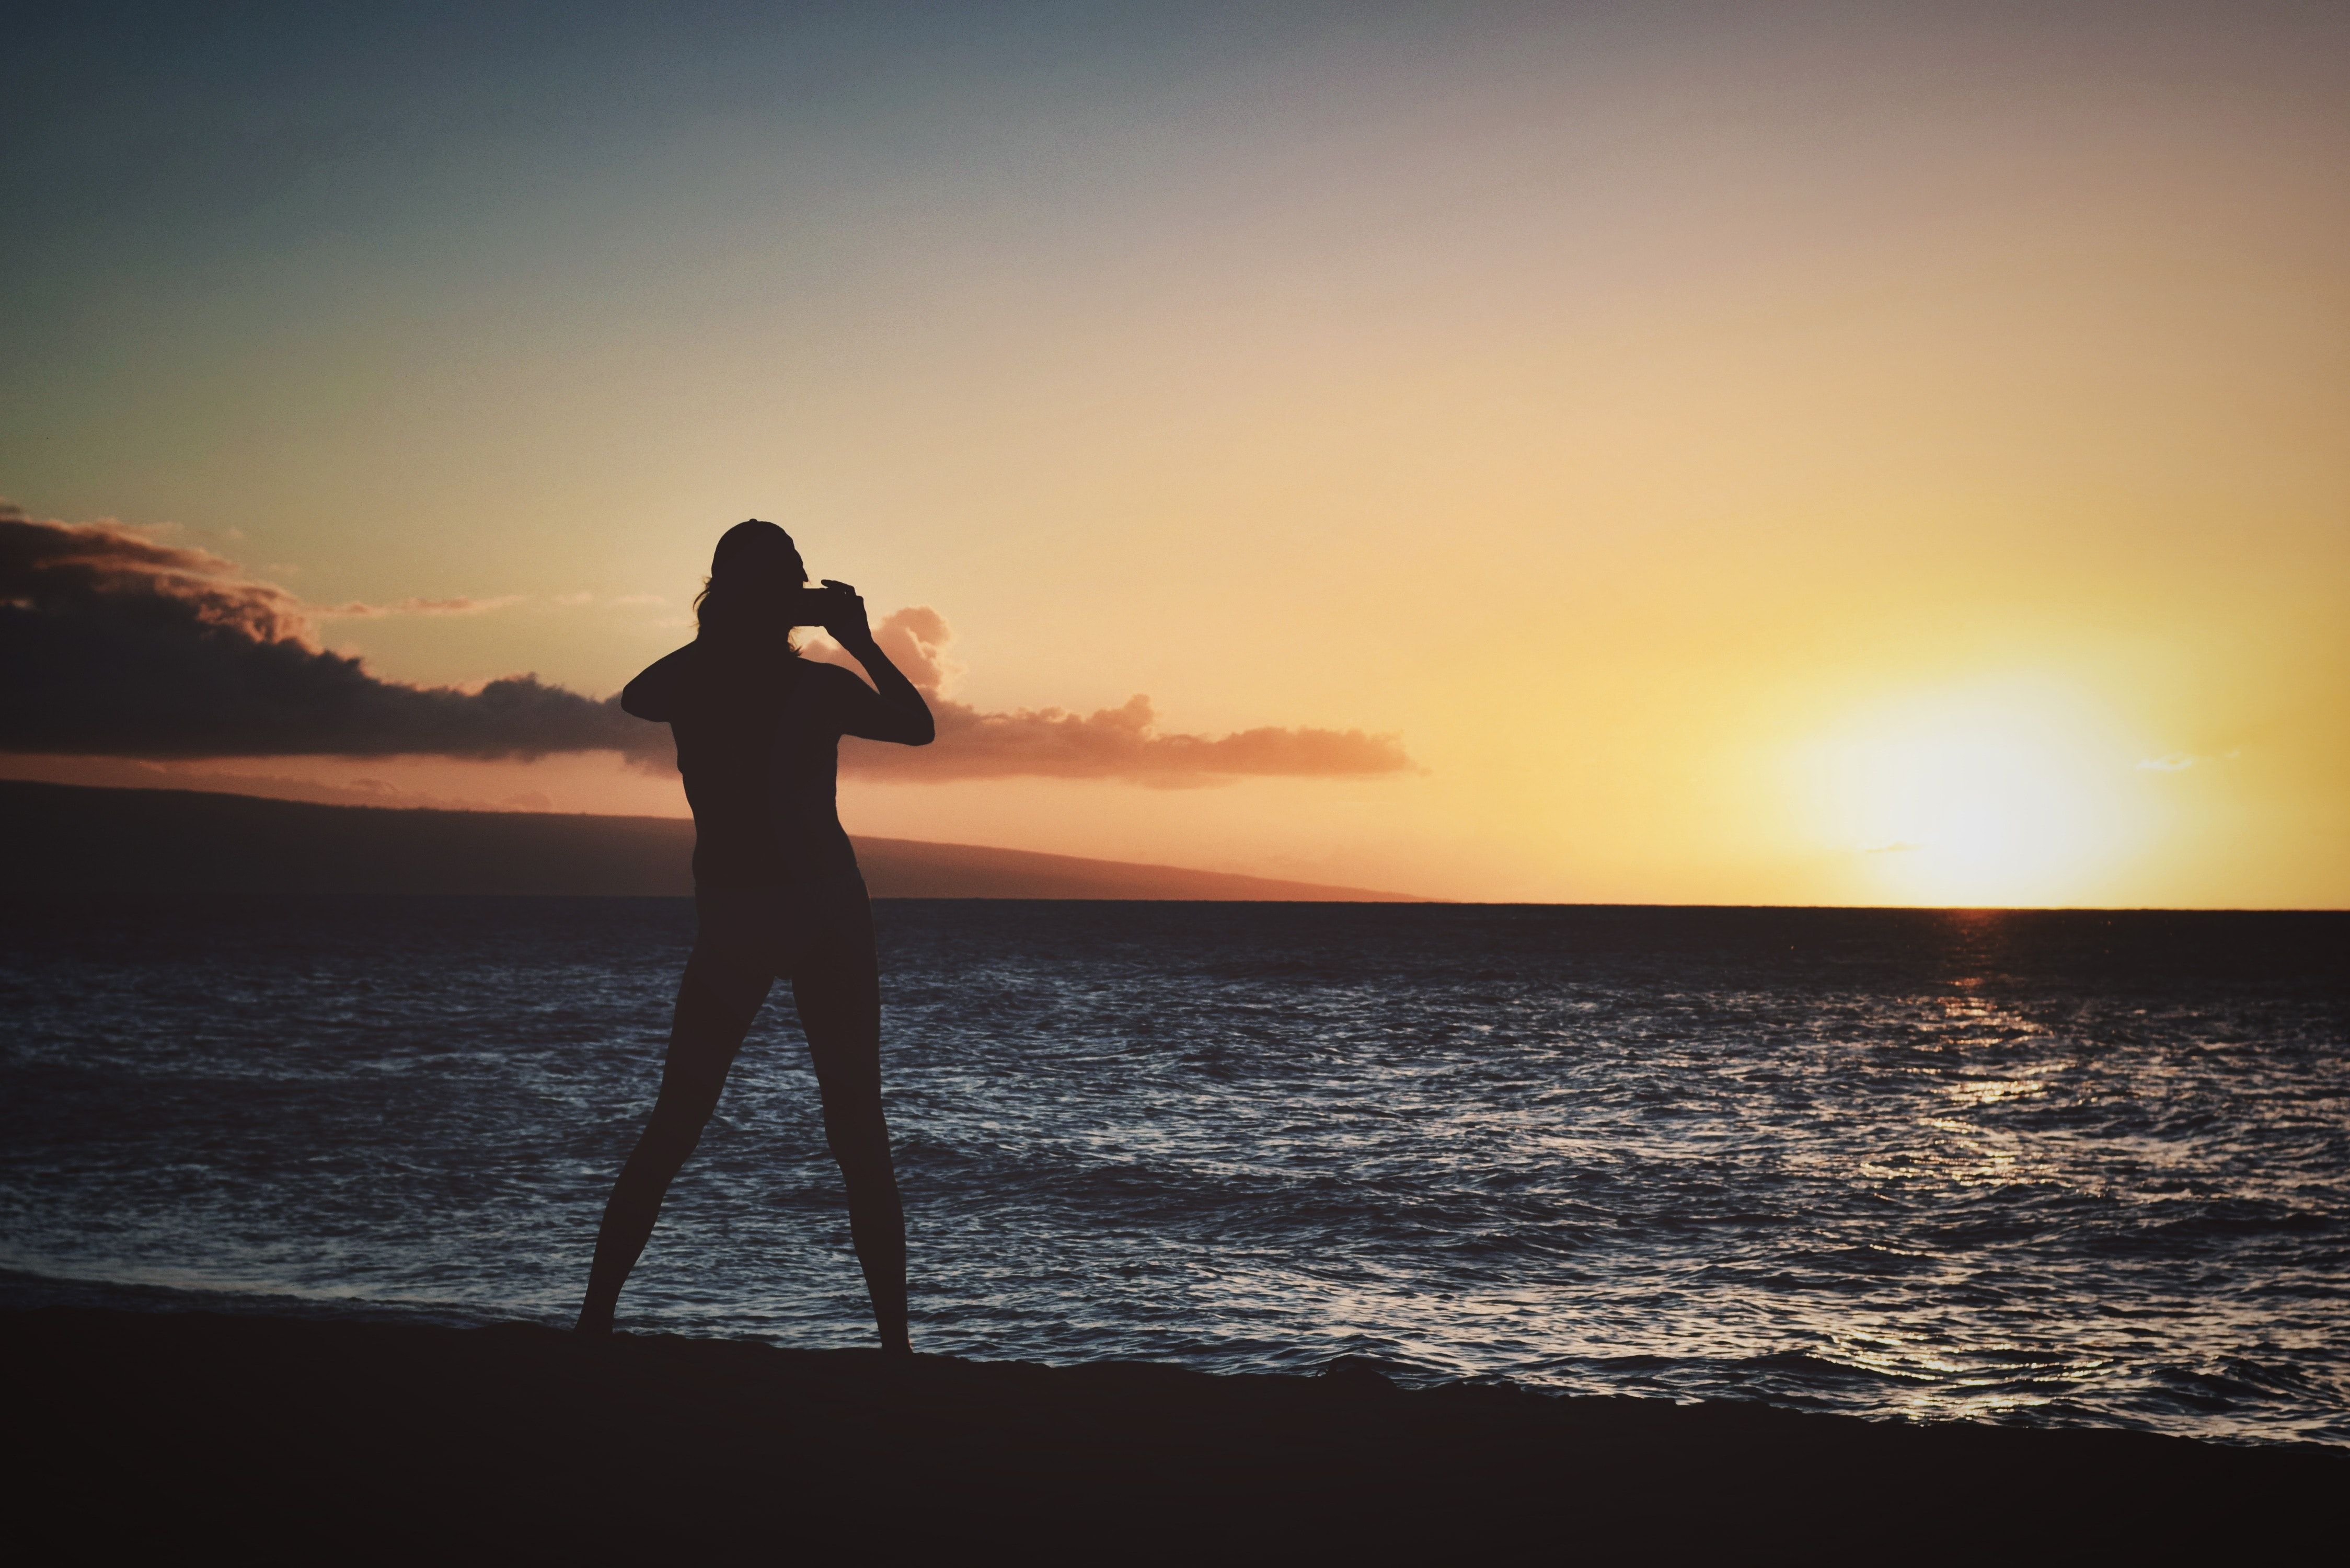 Silhouette of Woman Holding Camera Near Seashore during Golden Hour, Silhouette, Sky, Seashore, Seascape, HQ Photo